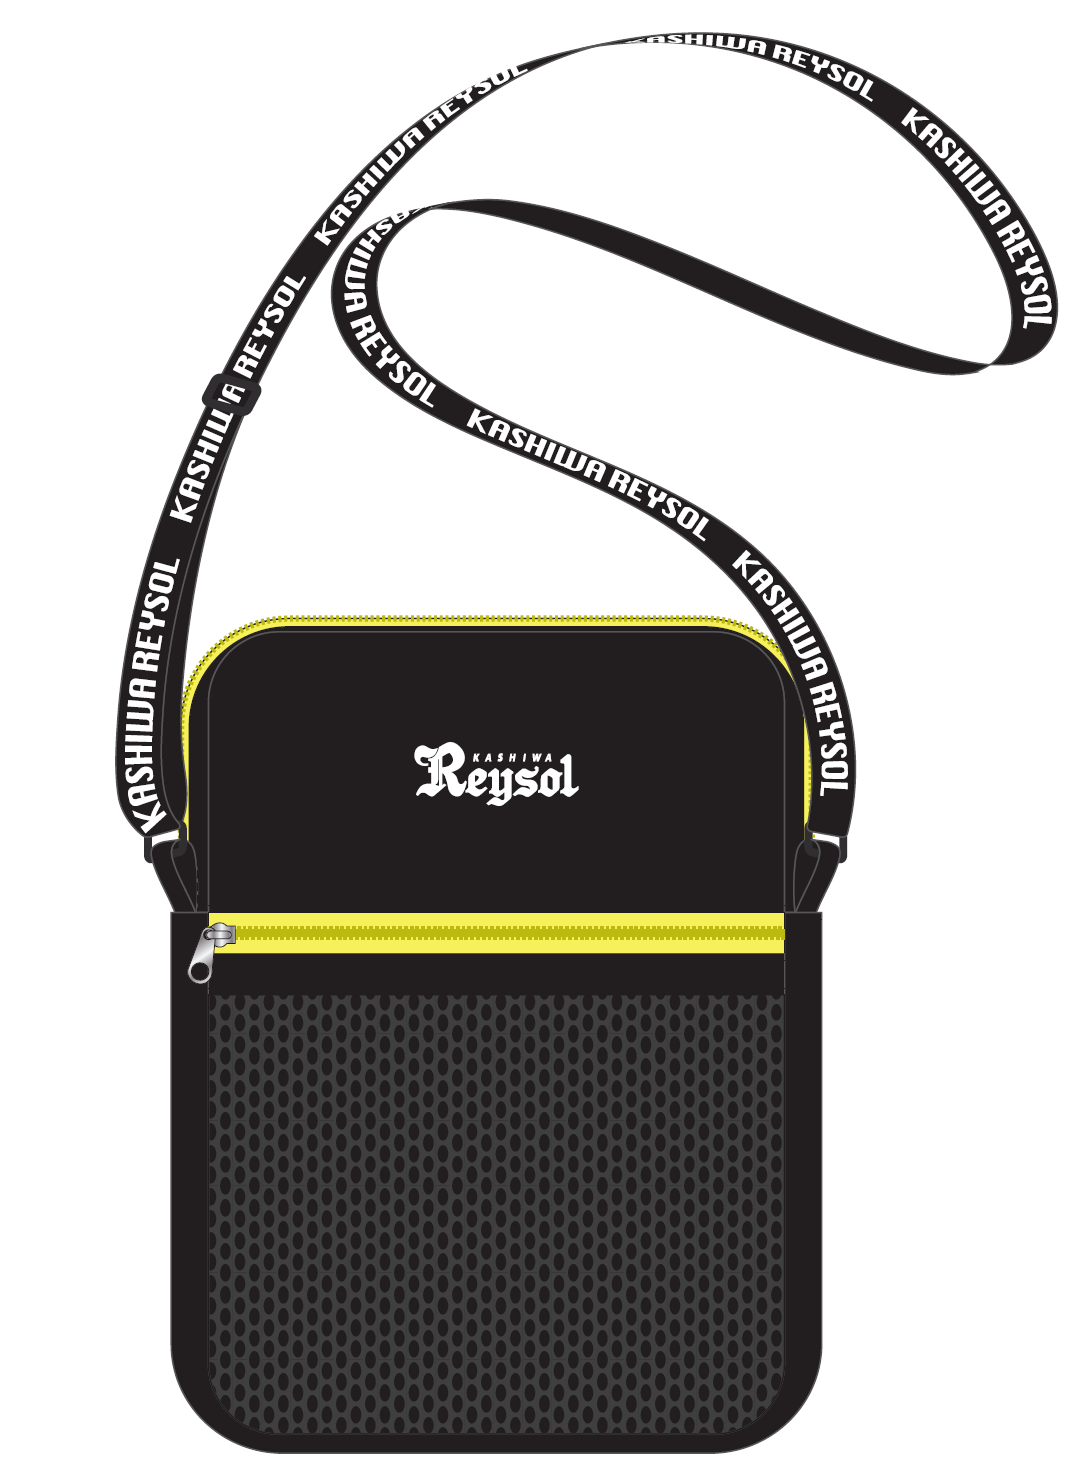 190922_shoulderbag.png